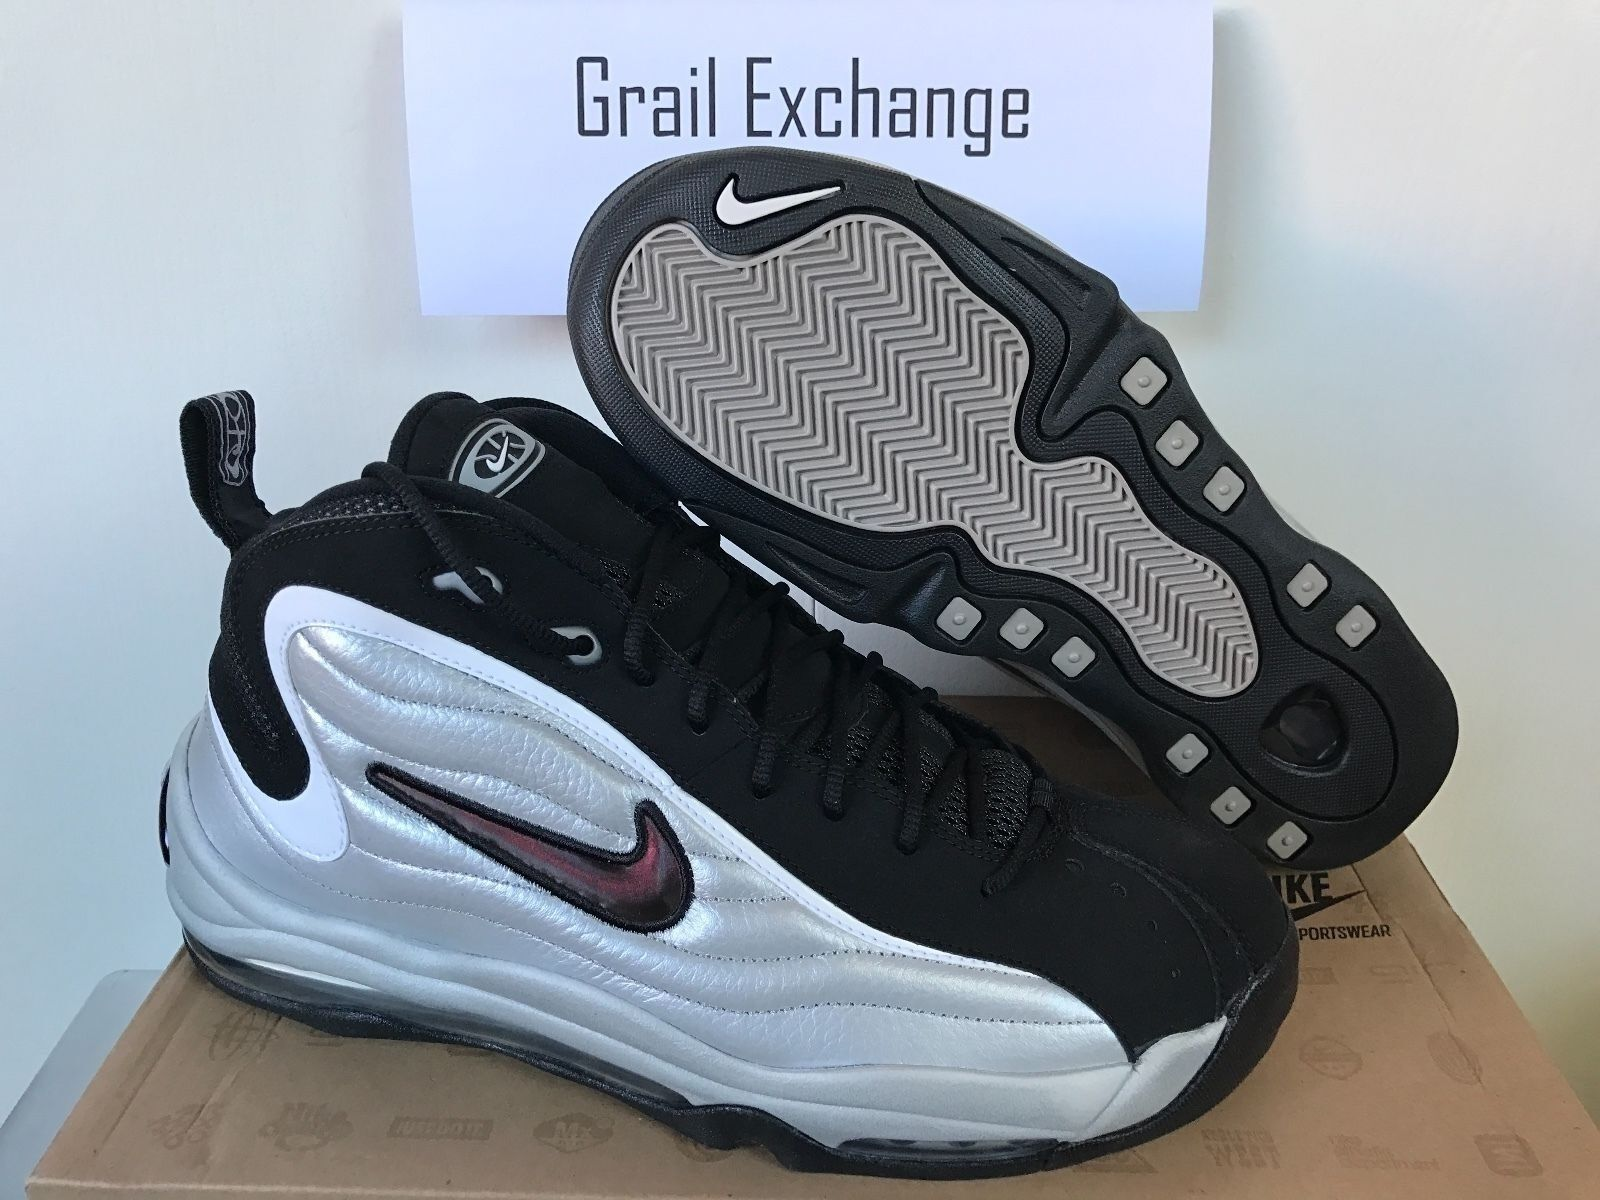 NEW Nike Air Total Max Uptempo LE 366724-001 Silver Pippen Duncan DS Rare Sz 11